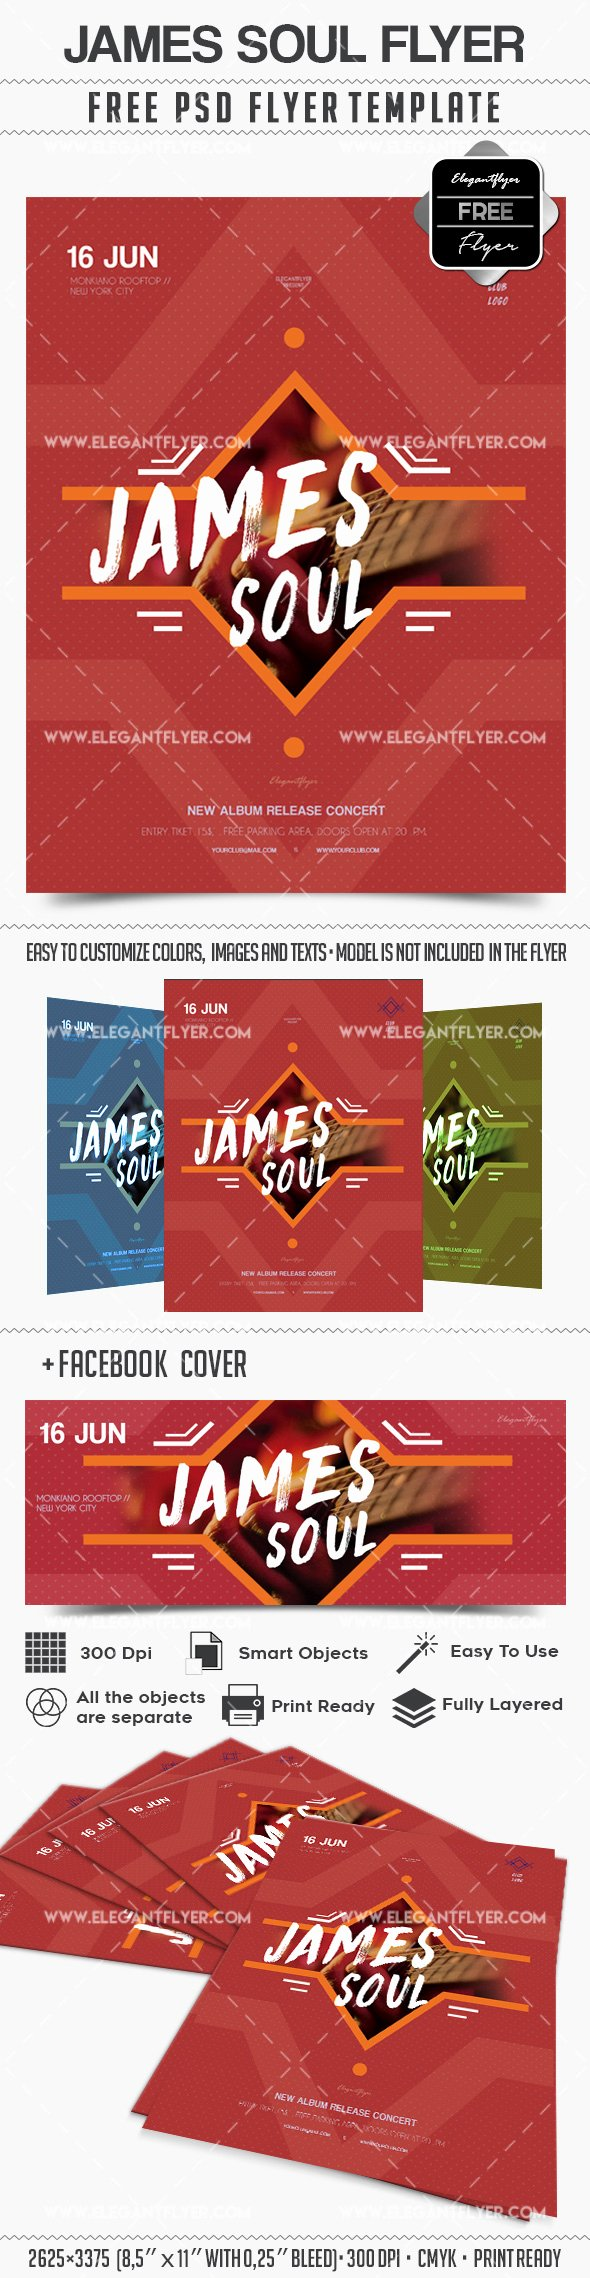 Concert Flyer Template Psd Best Of James soul Concert – Flyer Psd Template – by Elegantflyer